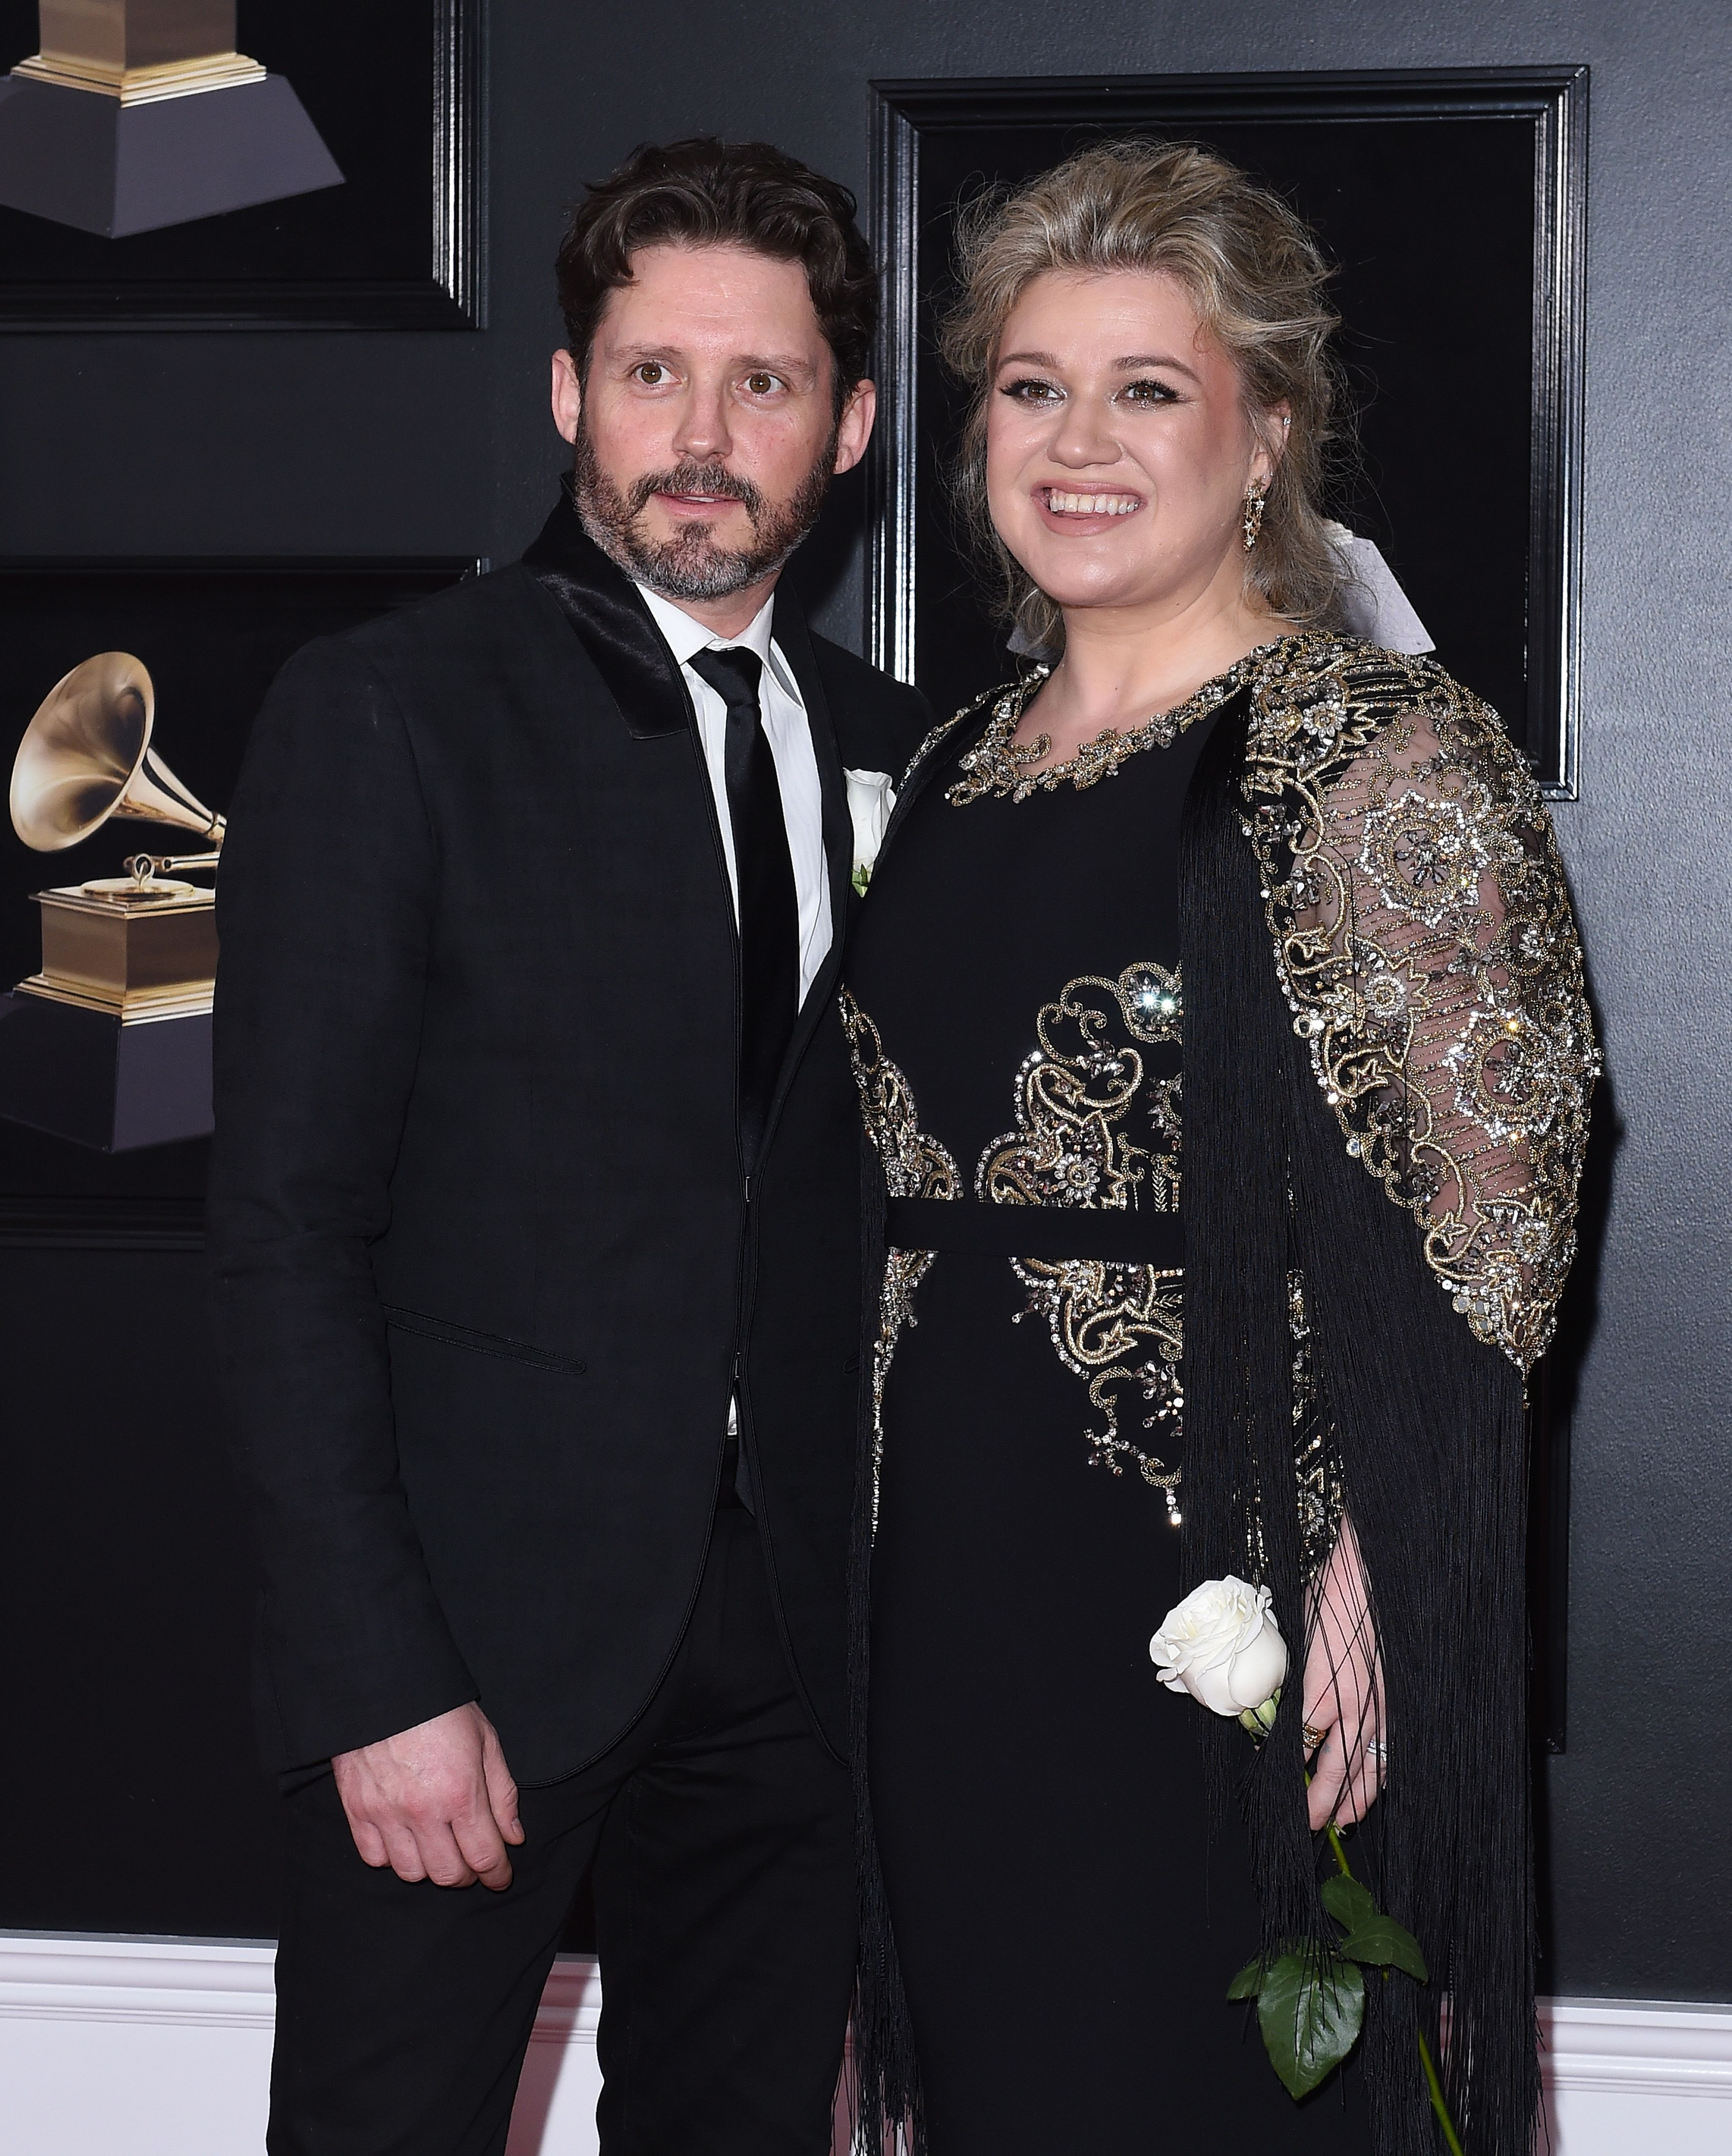 Recording artist Kelly Clarkson and Brandon Blackstock at the 60th Annual GRAMMY Awards at Madison Square Garden on January 28, 2018 | Photo: Getty Images